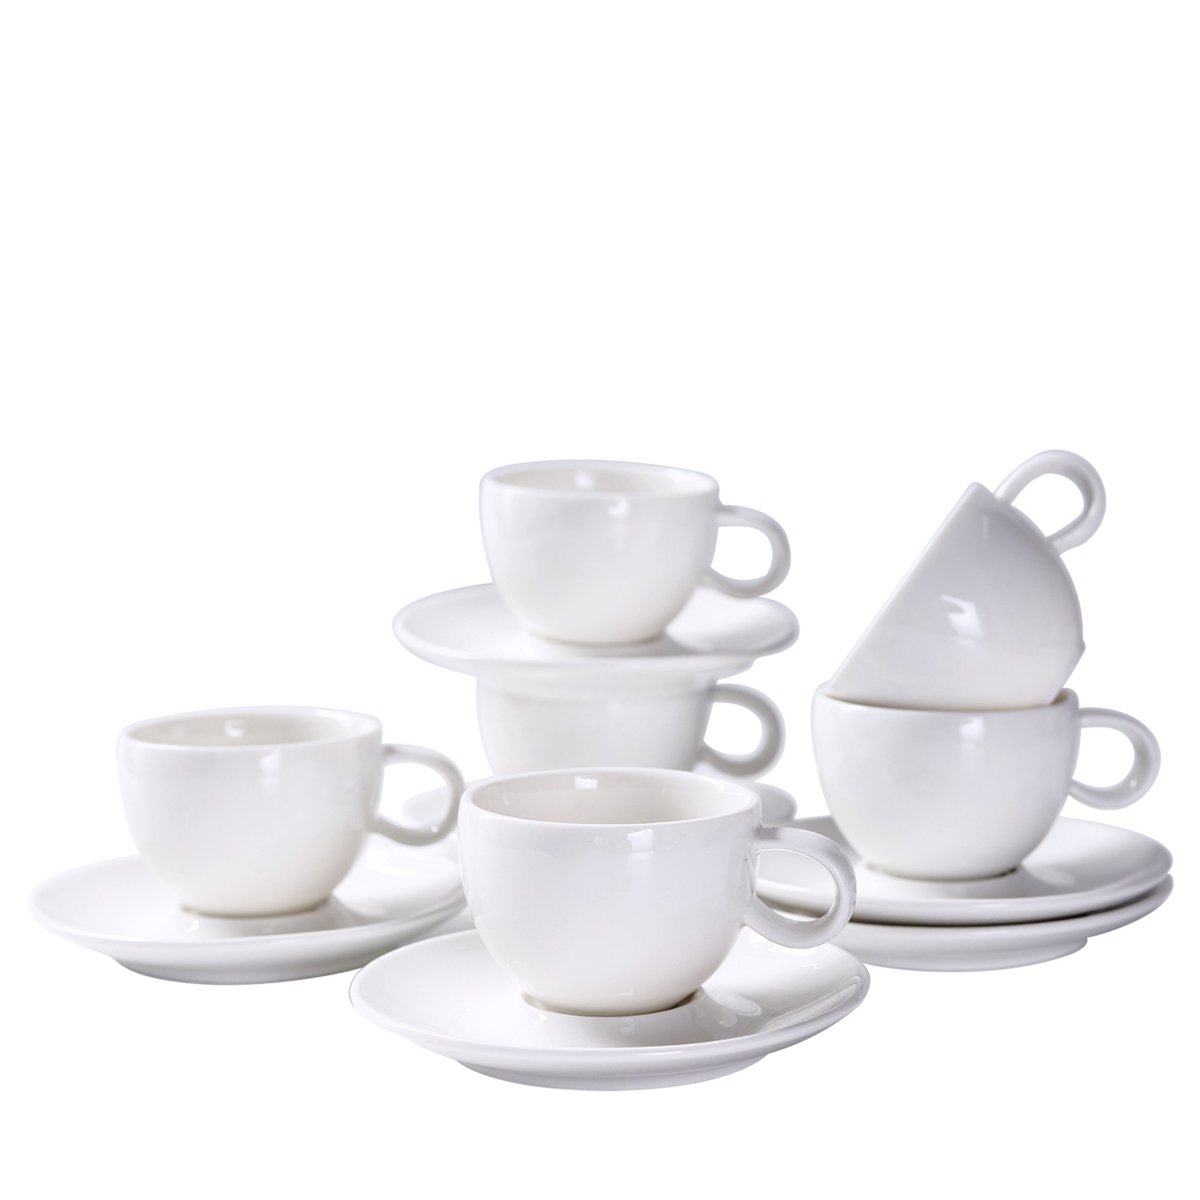 YOLIFE White Ceramic Espresso Cups,Beautiful Golfball Pits Model Demitasse Cups- 3OZ cup - set of 6 with Gift Package